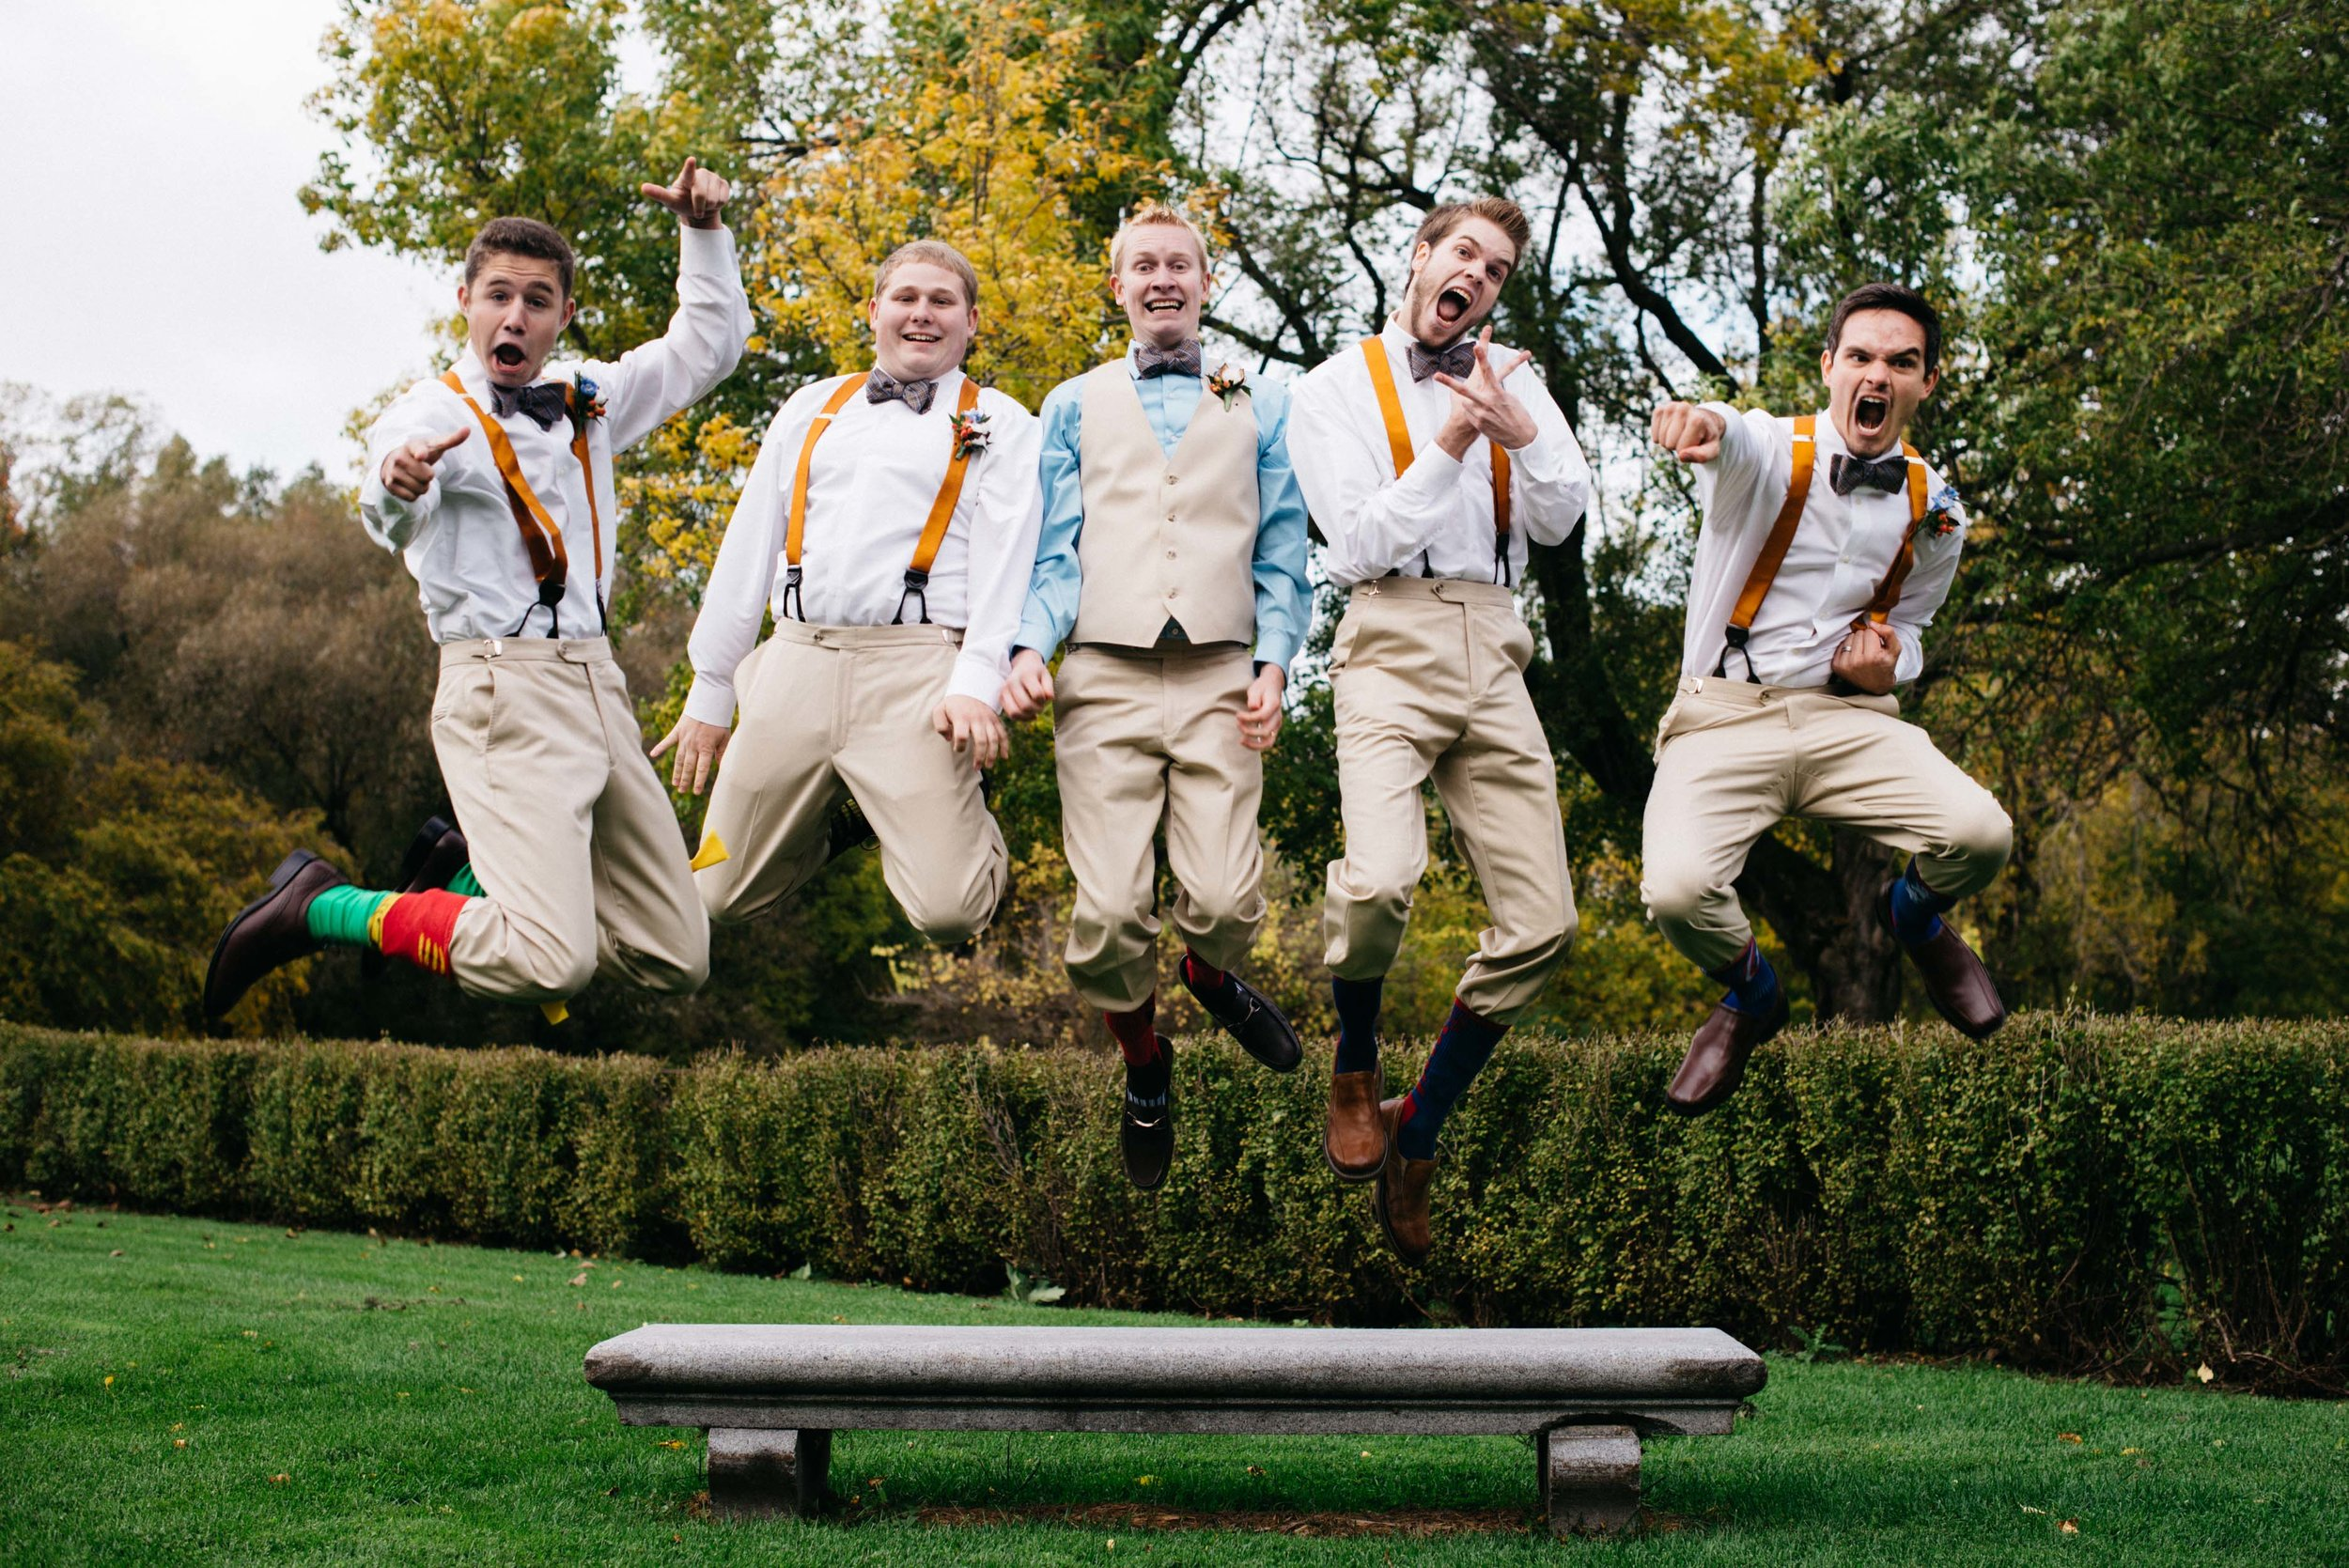 Kevin & Jess Green Bay Wisconsin Pamperin Park Wedding Fun Groomsmen Portrait Trevor and Elisebeth are a husband and wife wedding photography and videography team based in Minneapolis, Minnesota.